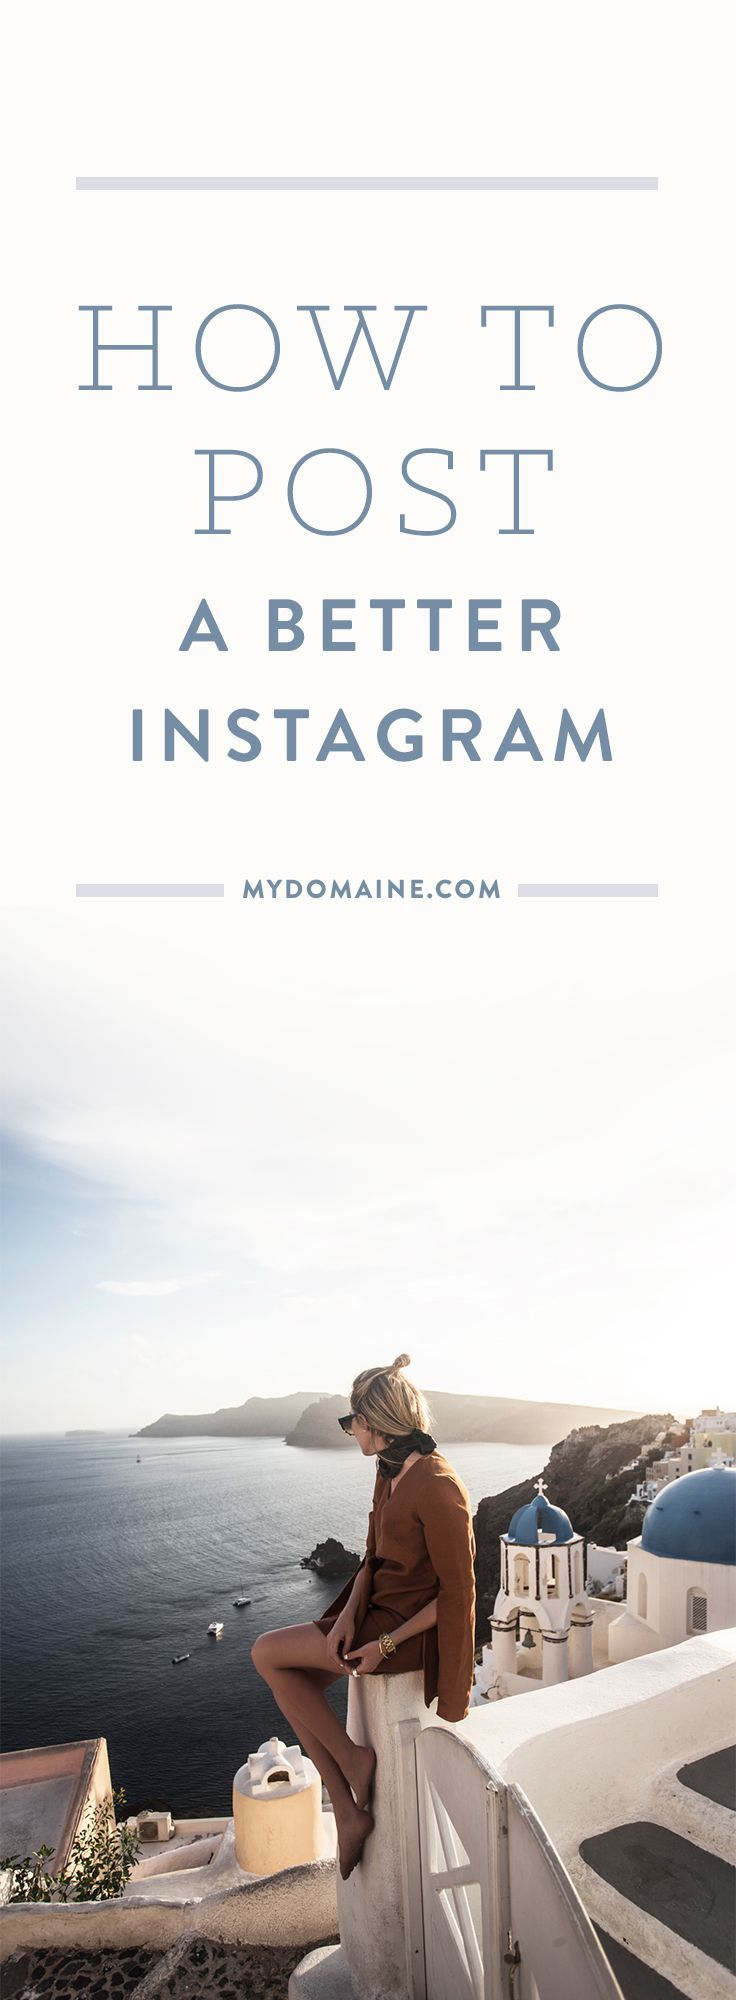 How To Post A Better Instagram, According To Our Social Pro